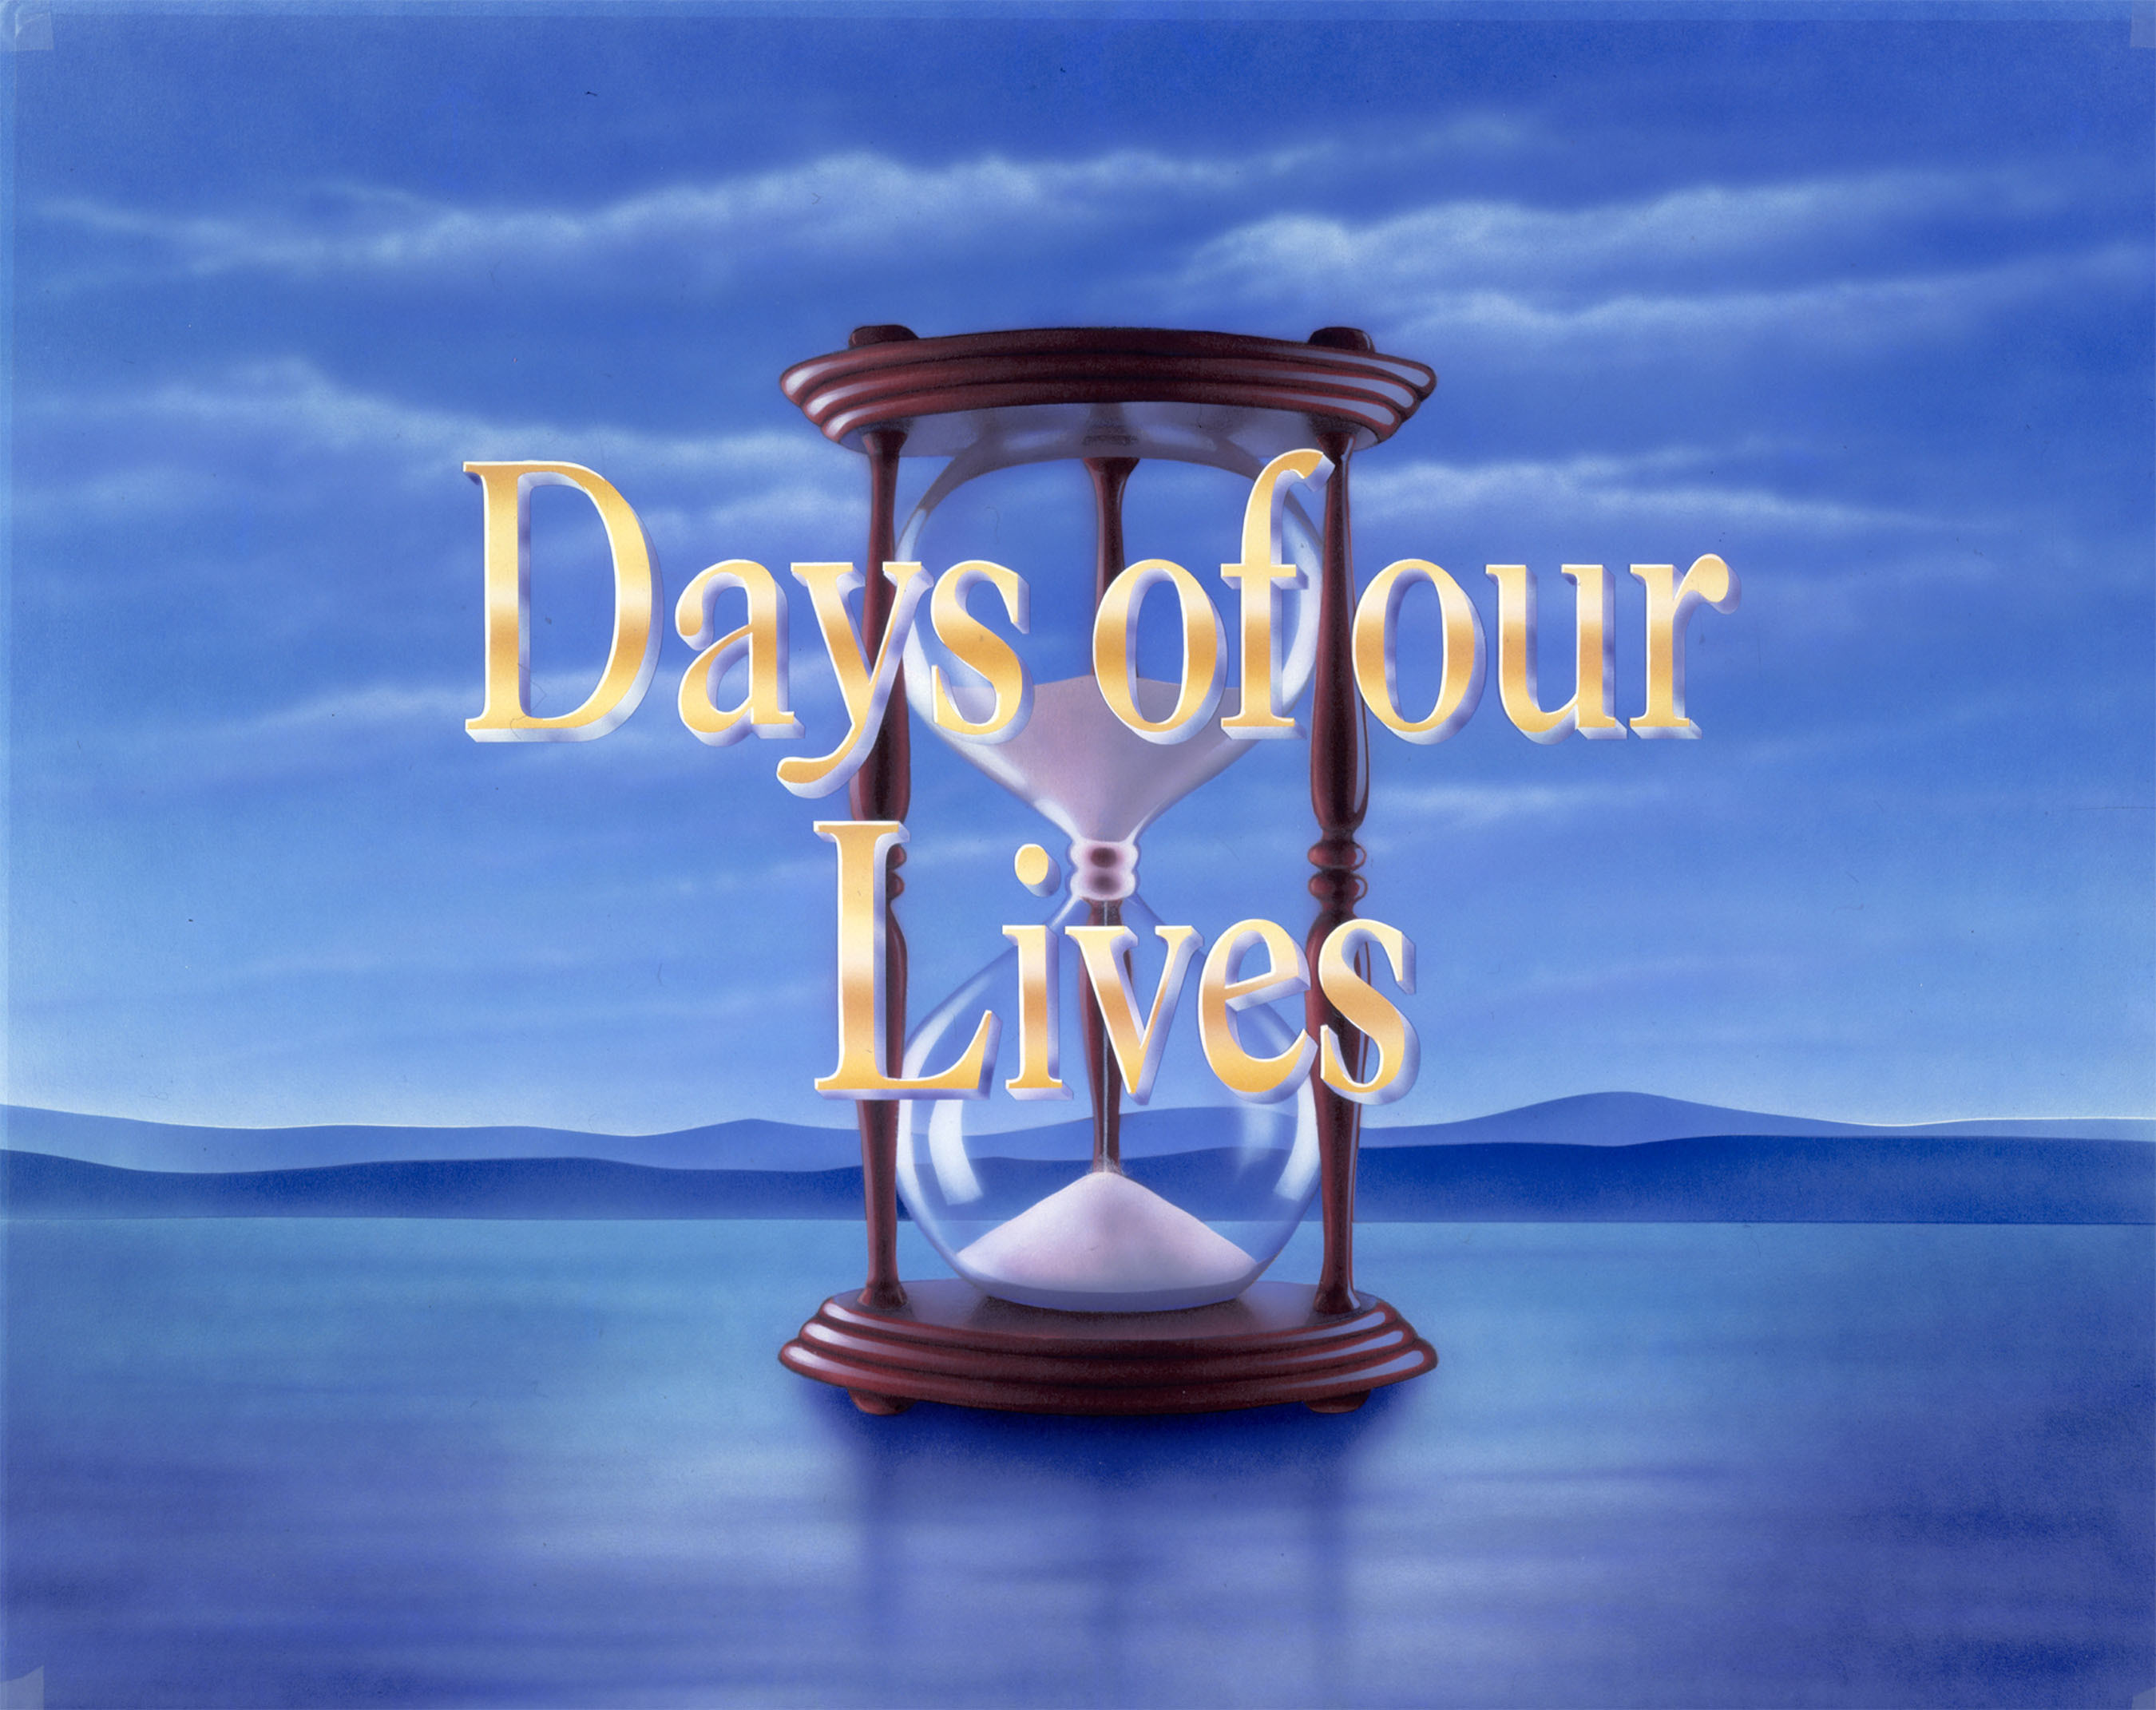 DAYS OF OUR LIVES Launches Latest Book 'Better Living' with Multi-City Tour